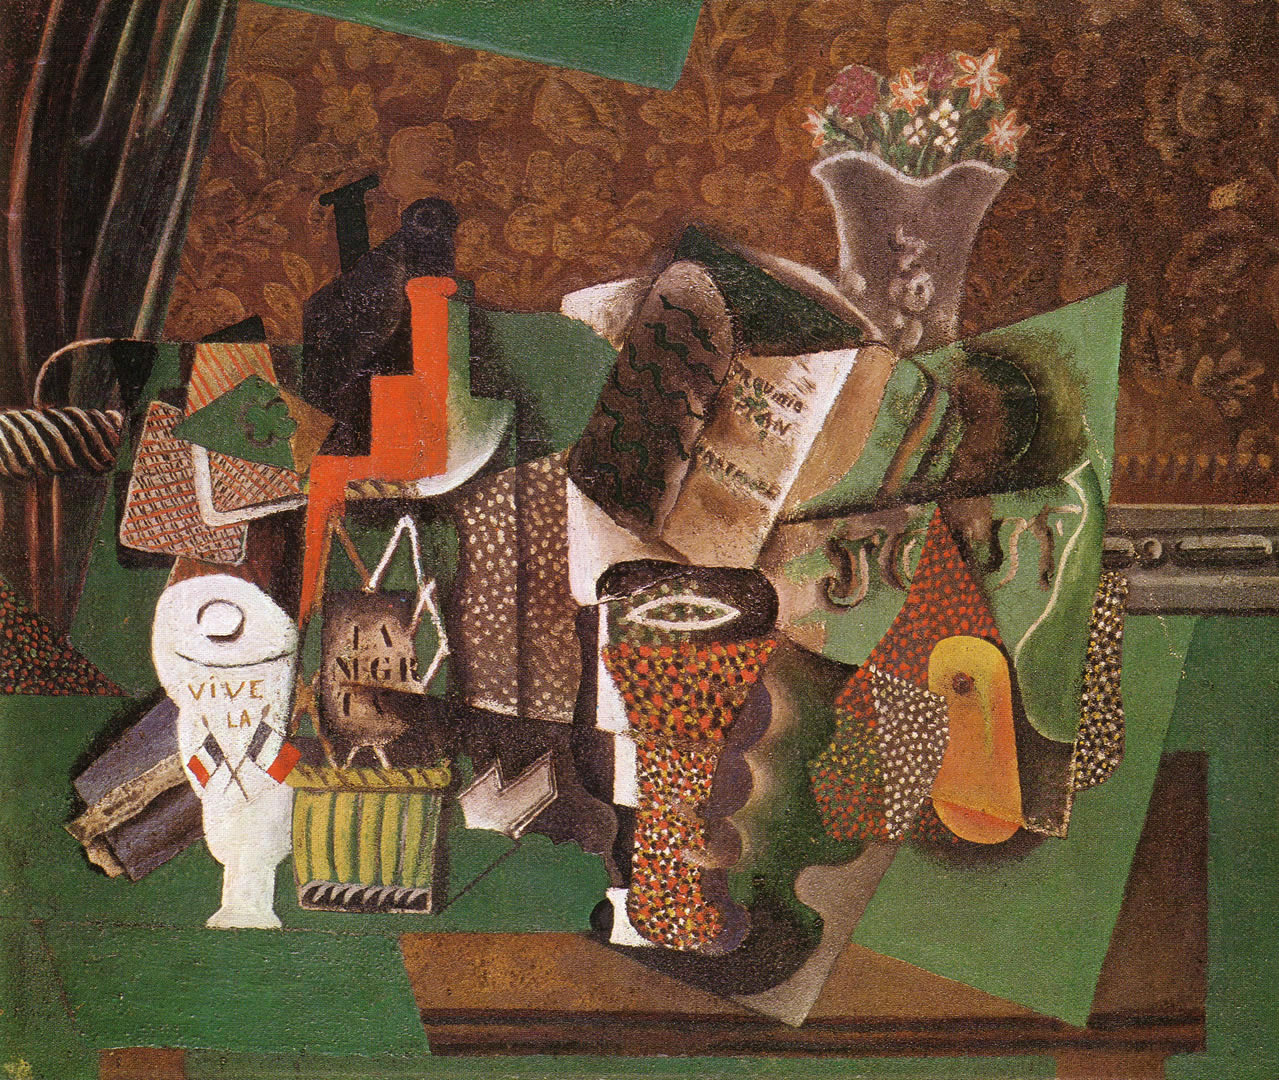 the life and art works of pablo ruiz picasso Pablo ruiz picasso, [2]  picasso: life and art  a visual guide to pablo picasso's works new york: b&h publishers picasso, olivier widmaier.